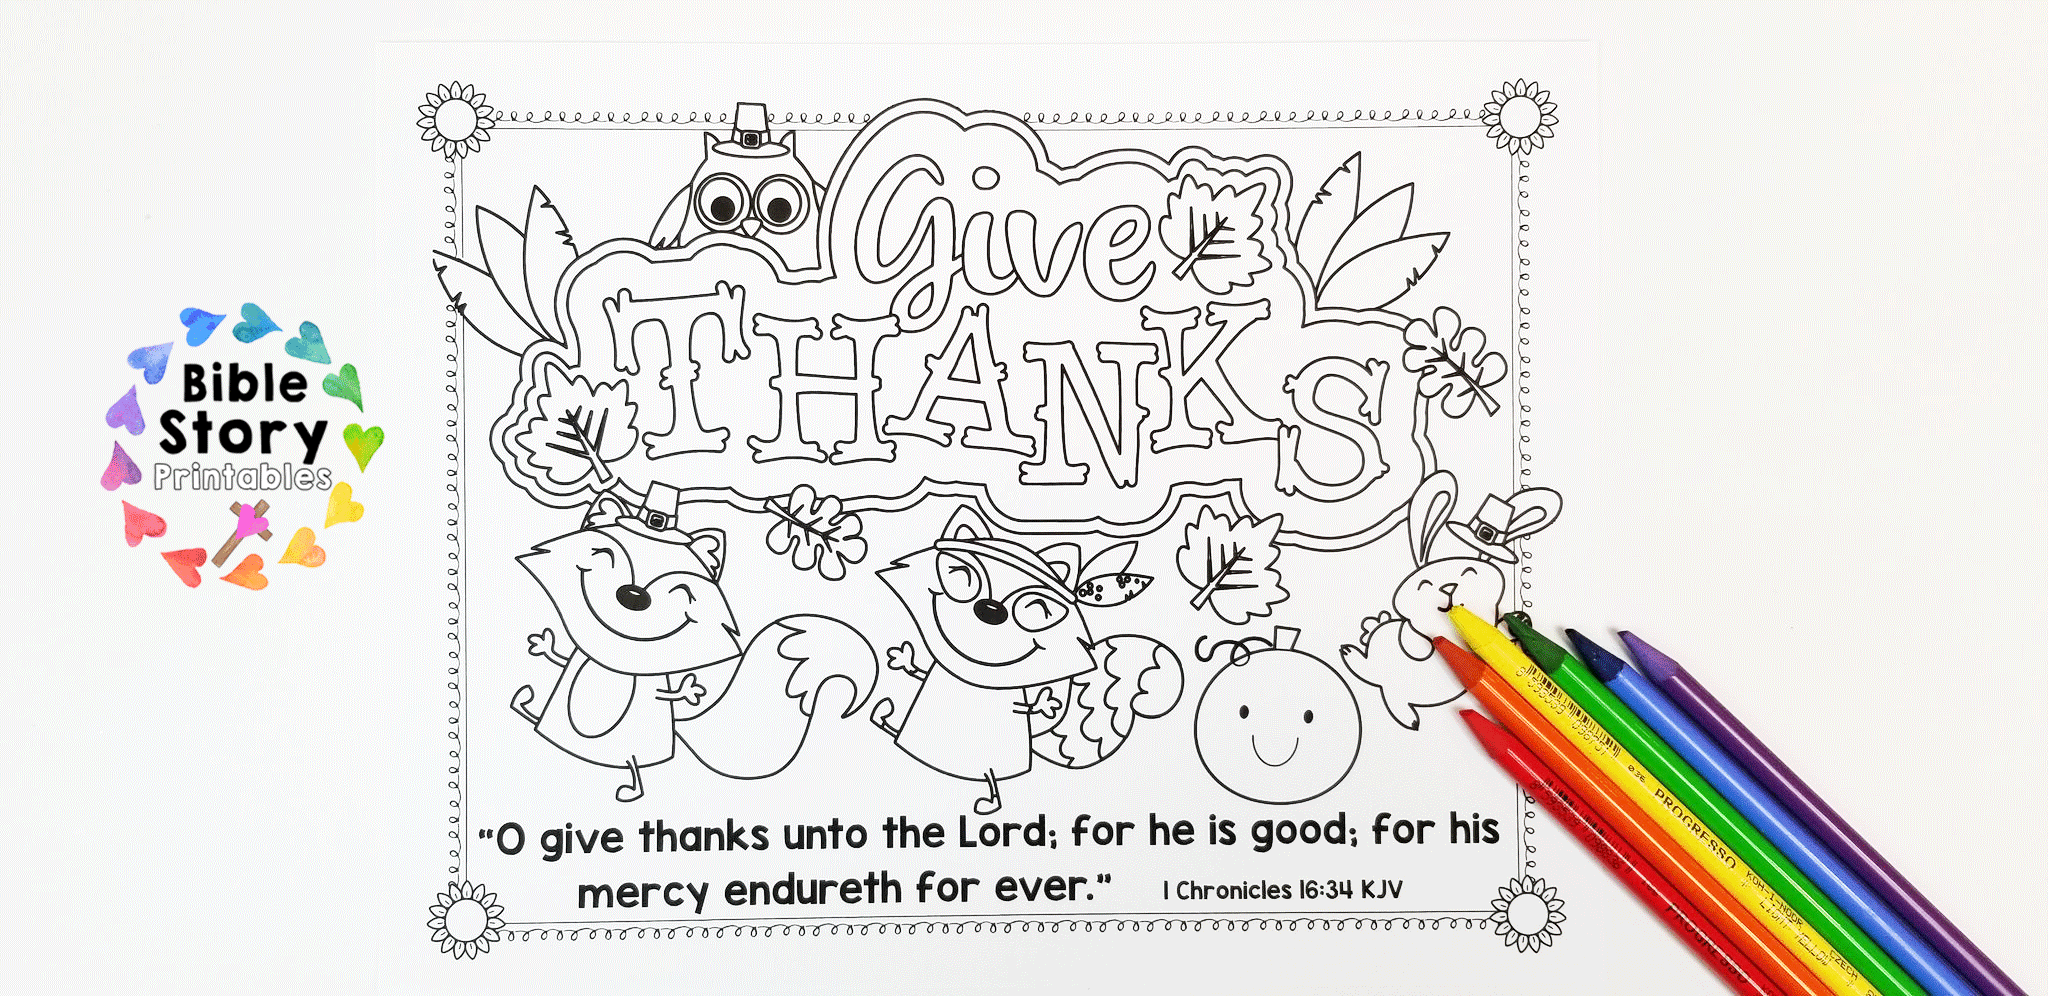 photo regarding Free Printable Thanksgiving Placemats known as Printable Thanksgiving Placemat with Bible Verse - The